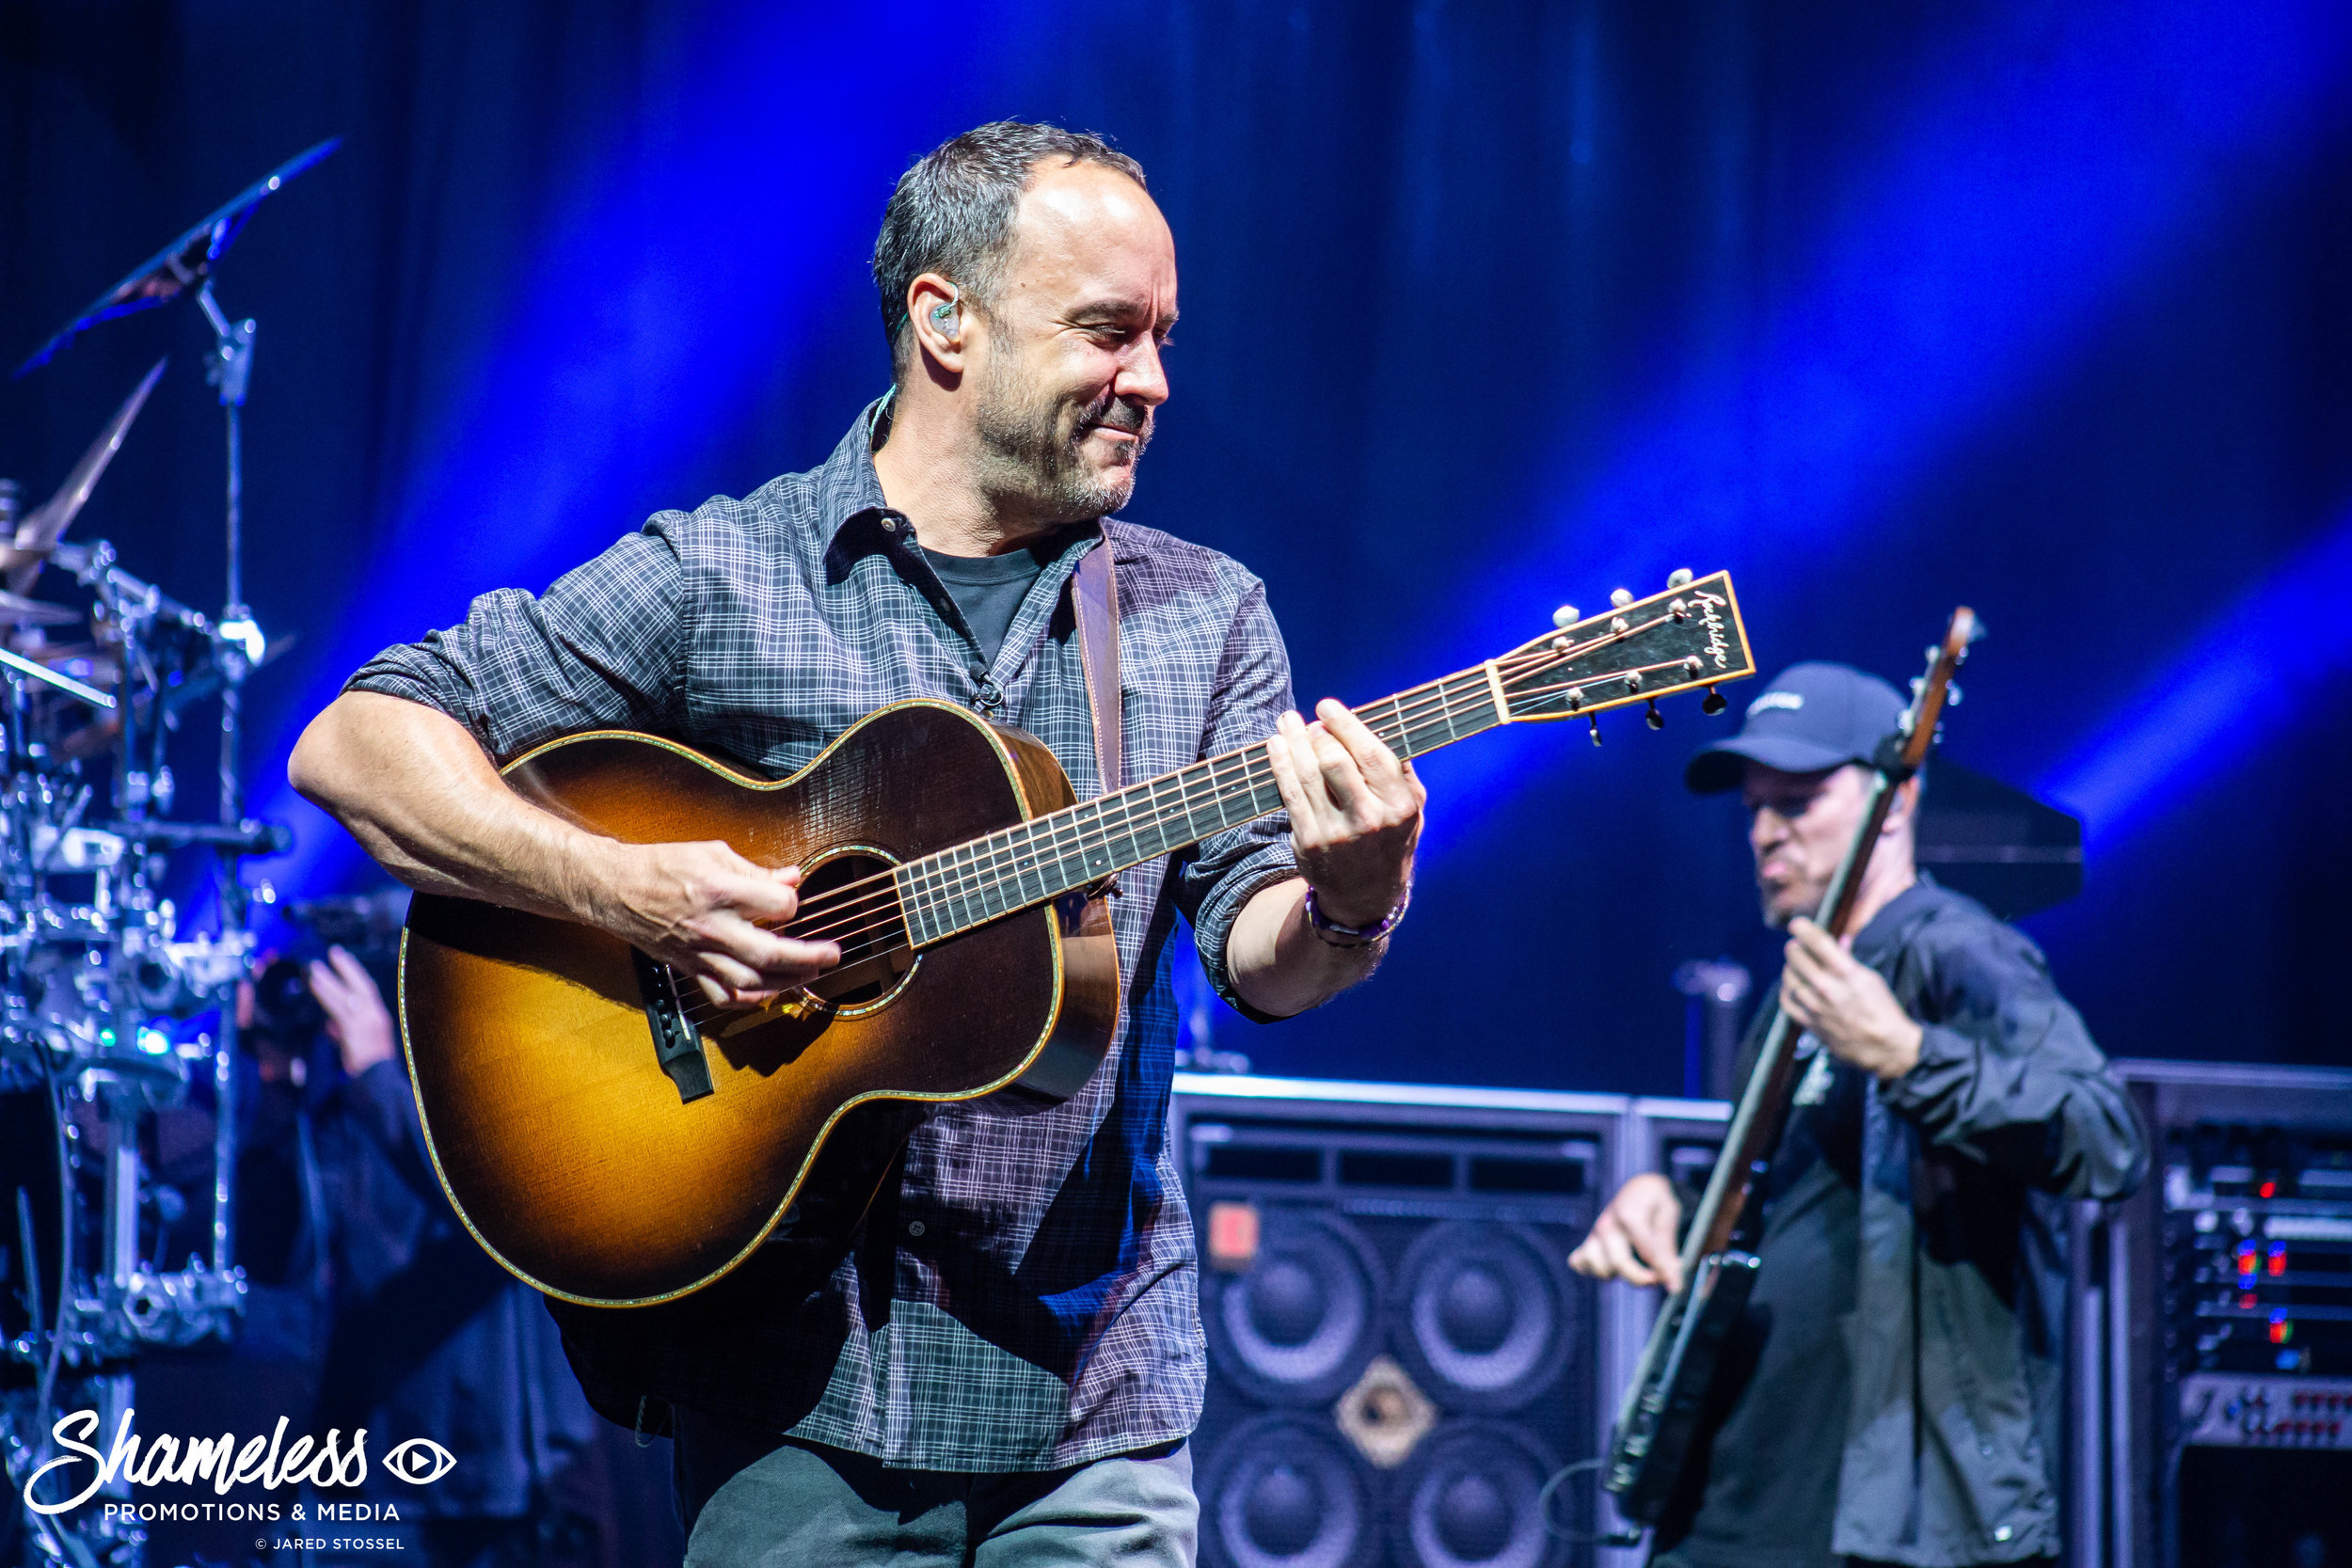 Dave Matthews Band performing at Shoreline Amphitheatre in Mountain View, CA. September 8, 2018. Photo Credit: Jared Stossel